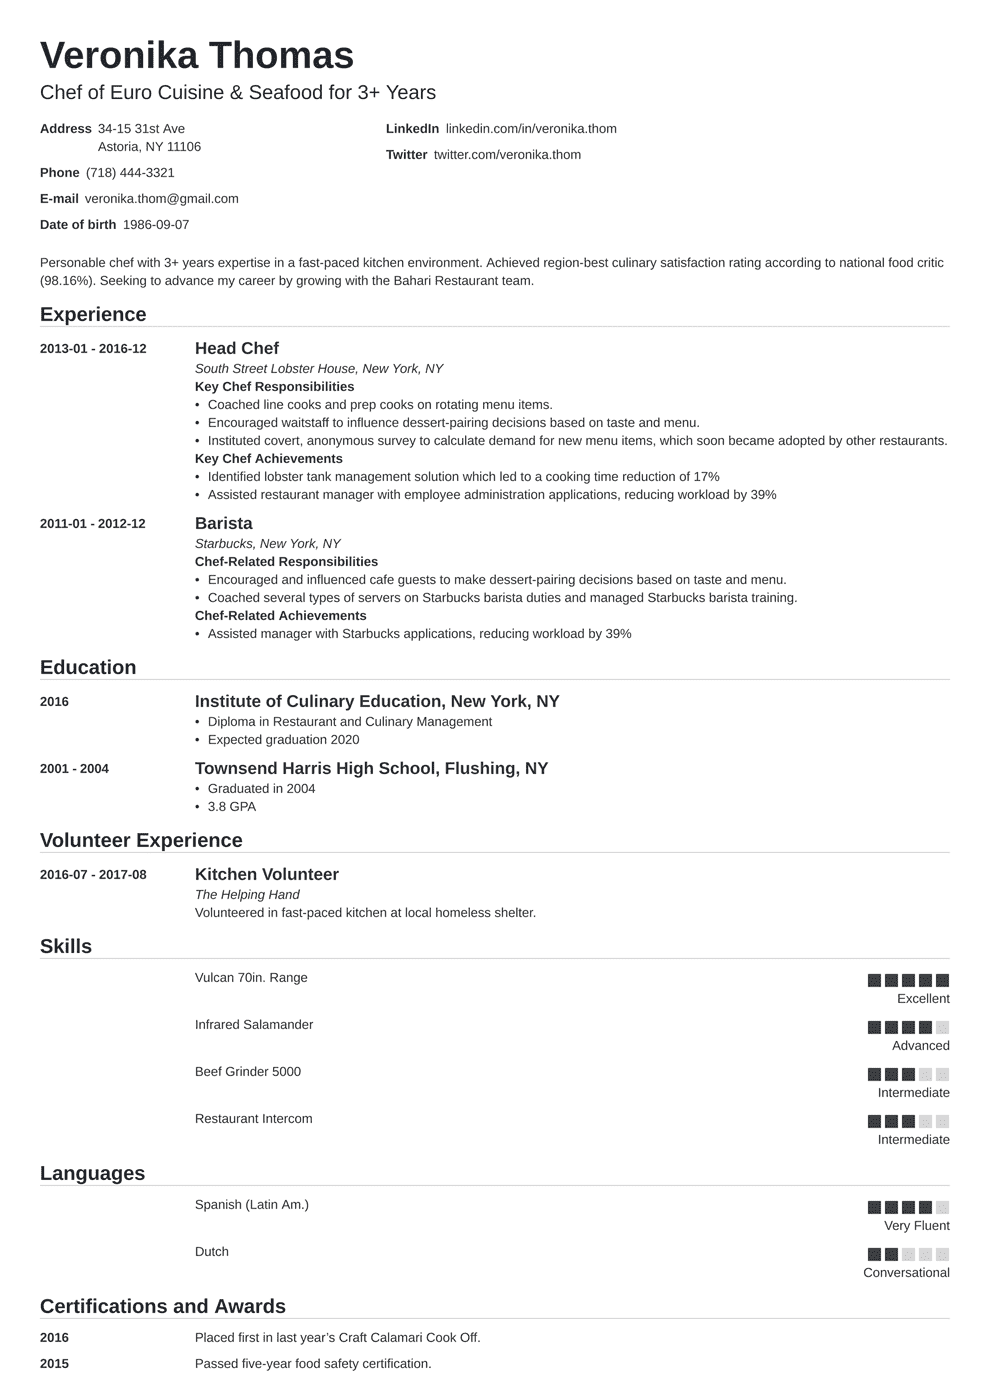 Chef Resume: Sample & Complete Guide [20+ Examples]